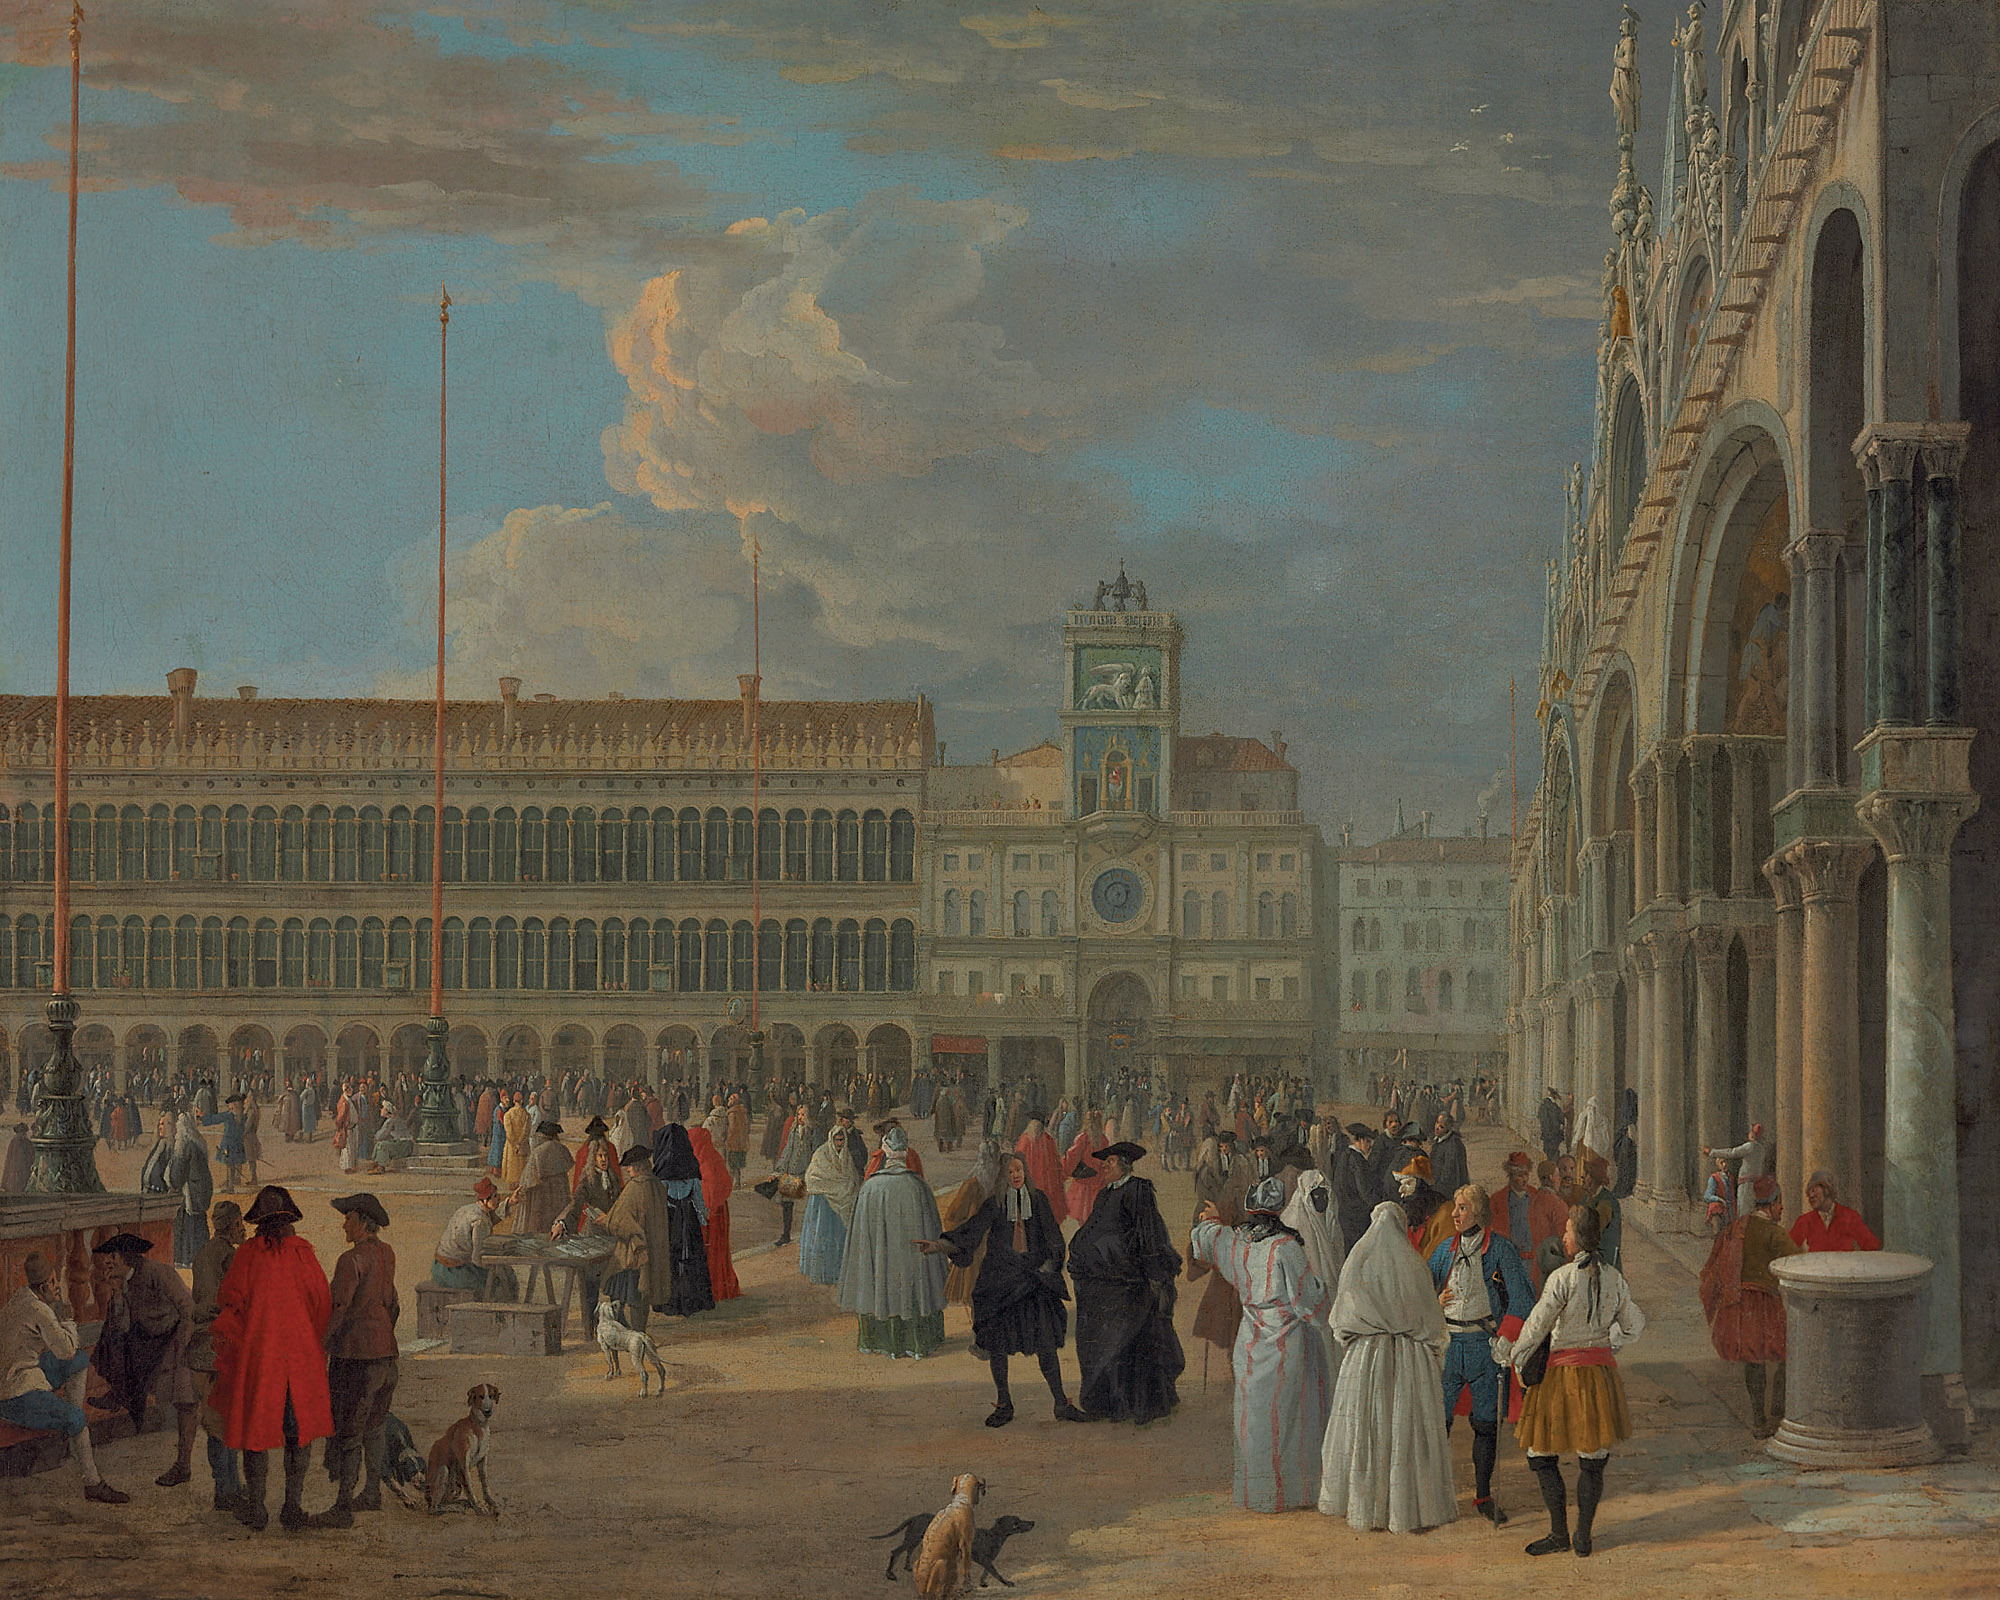 View of Piazza San Marco with the Torre dell'Orologio, Venice